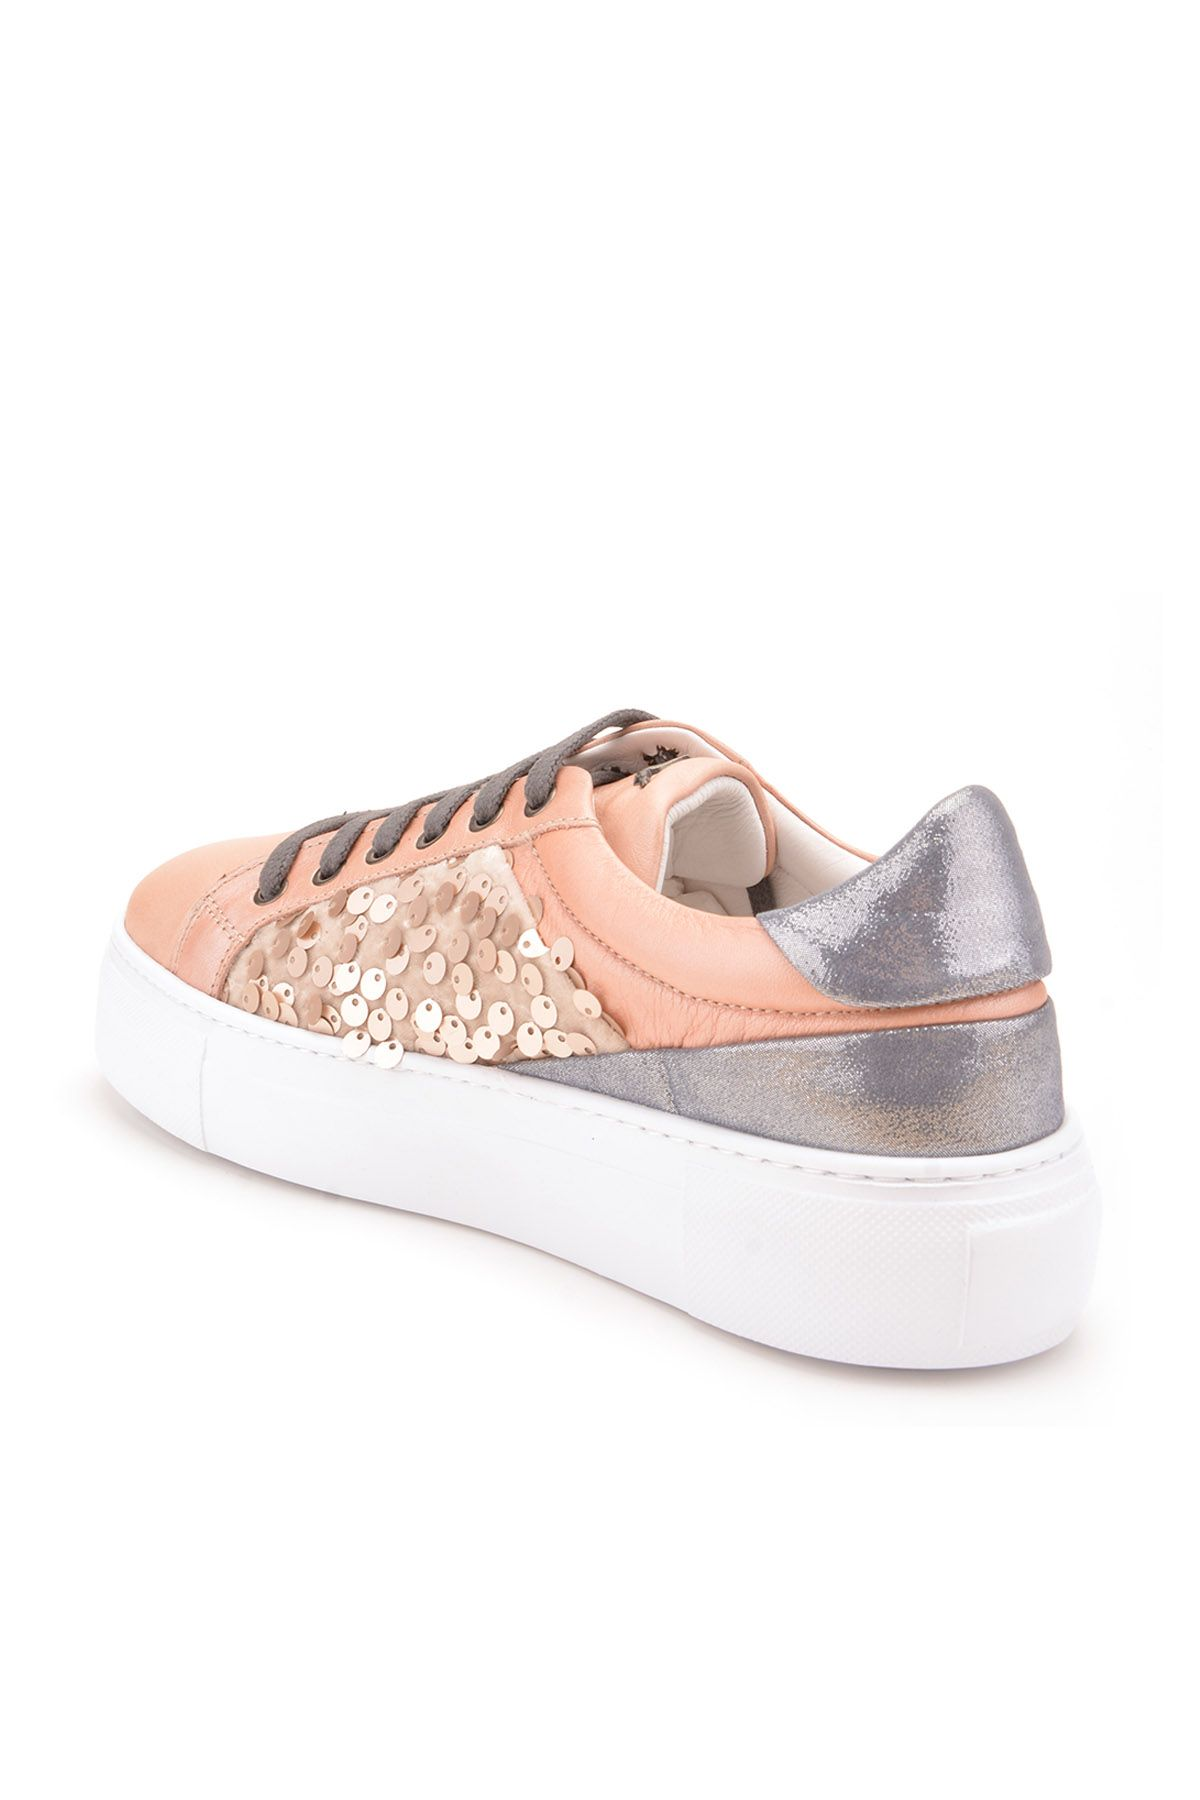 Pegia Blanche Sport Shoes From Genuine Leather REC-002 Powdery